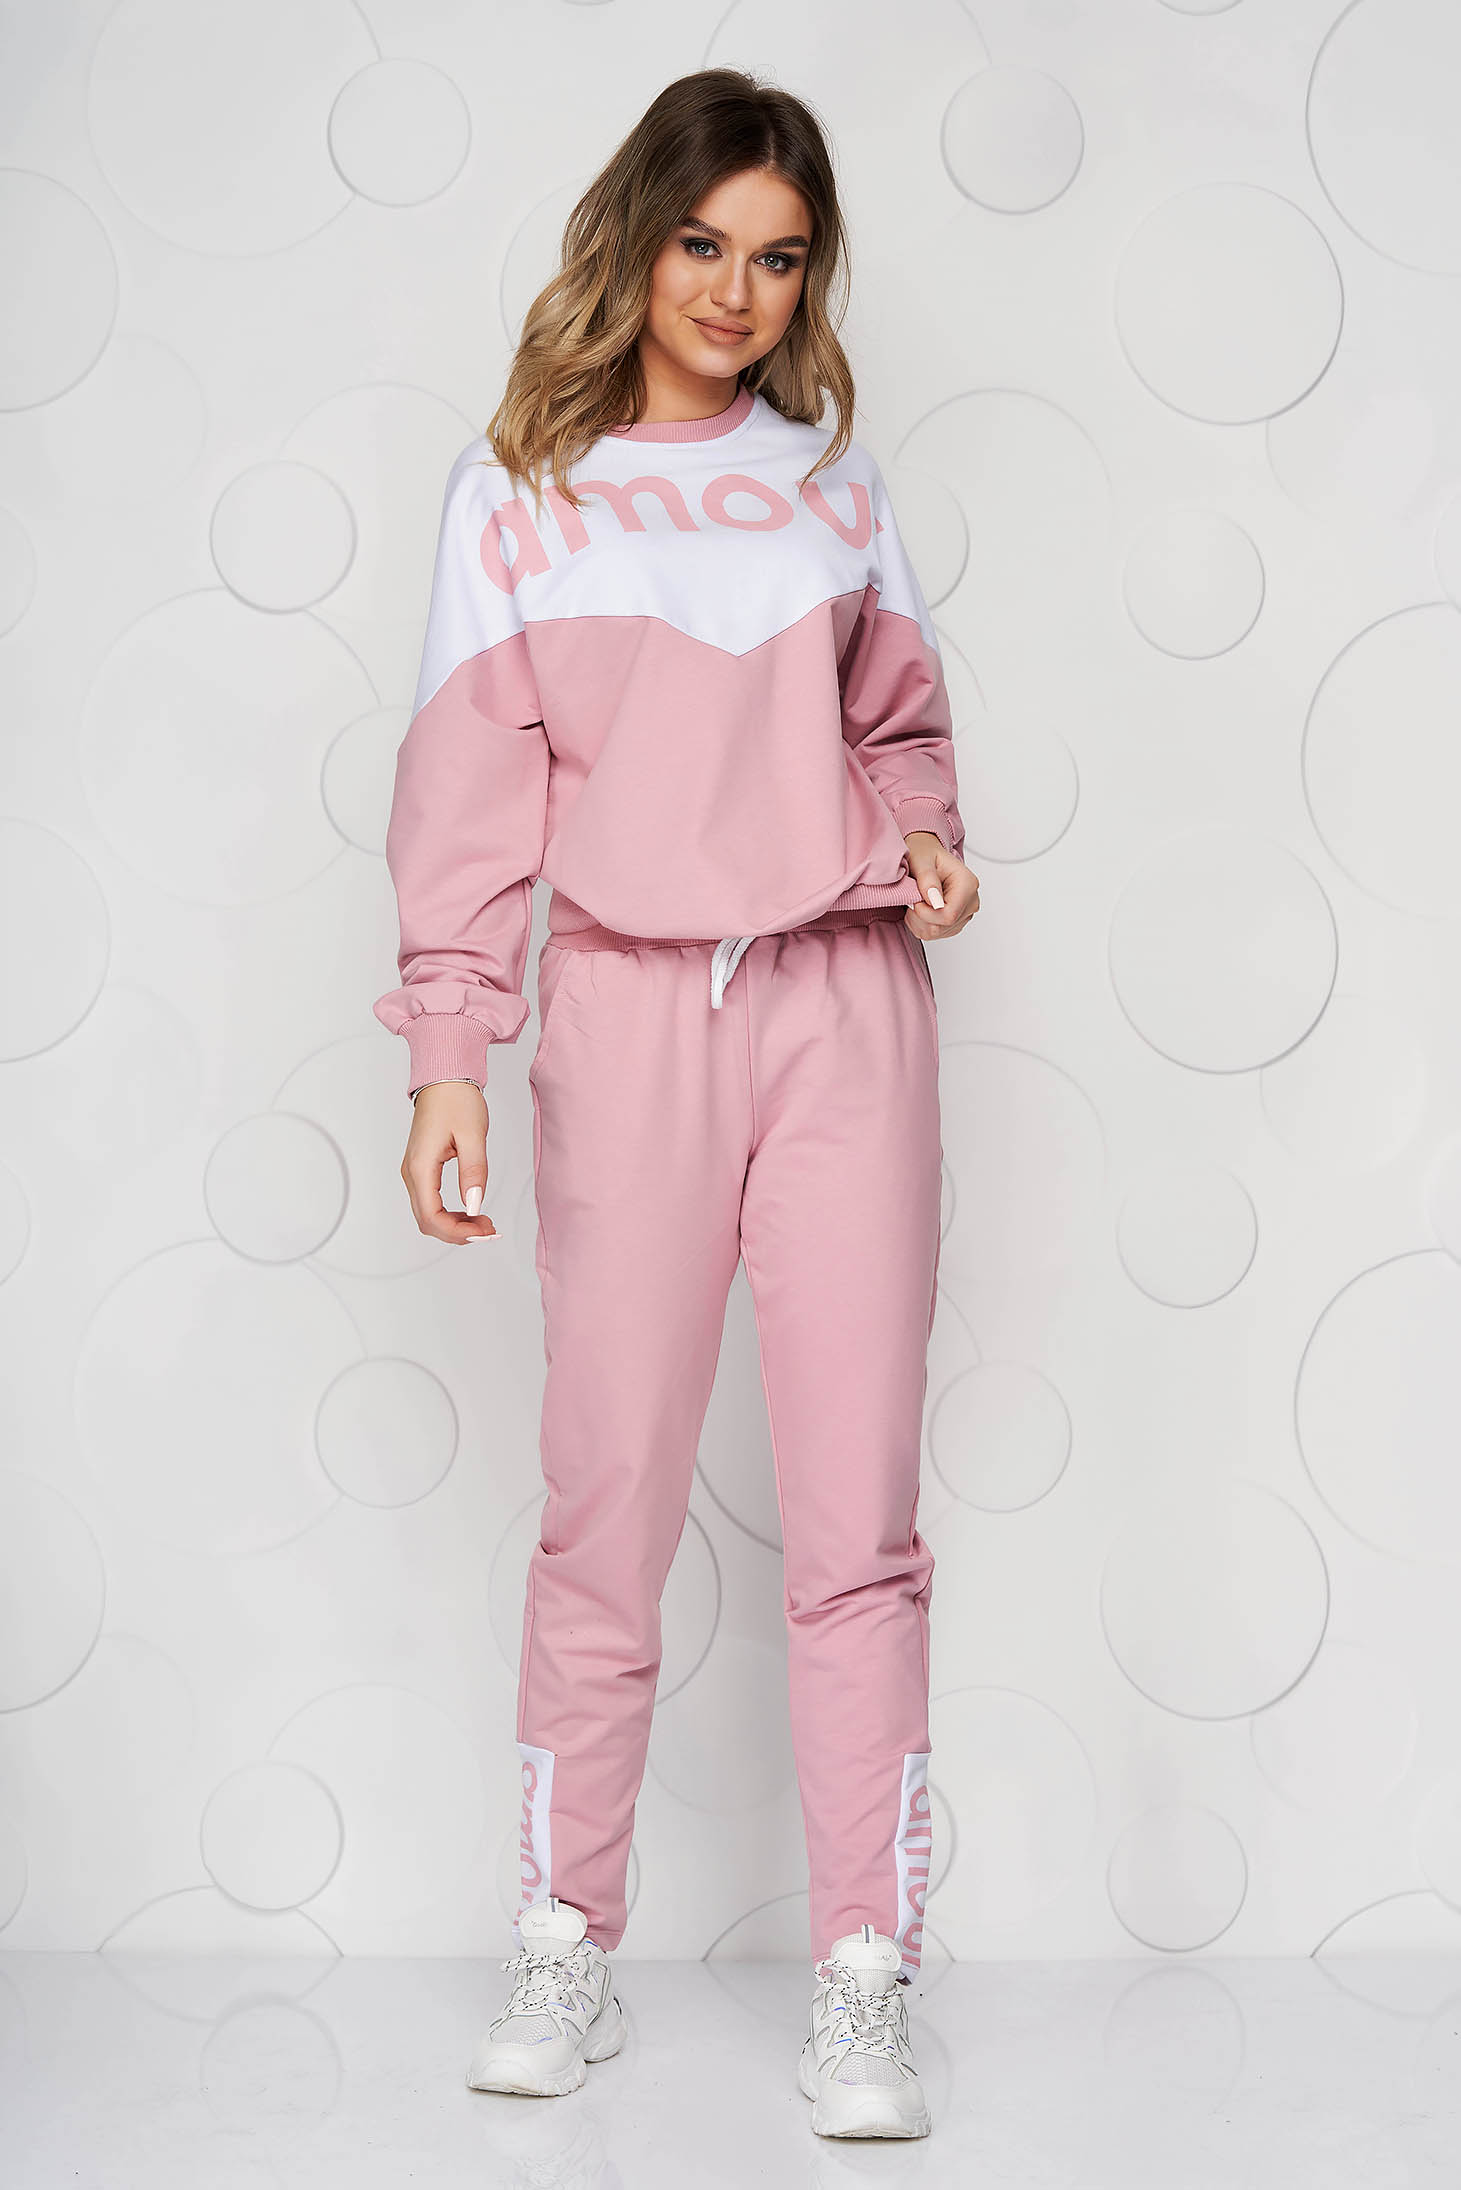 Pink sport 2 pieces loose fit with graphic details cotton